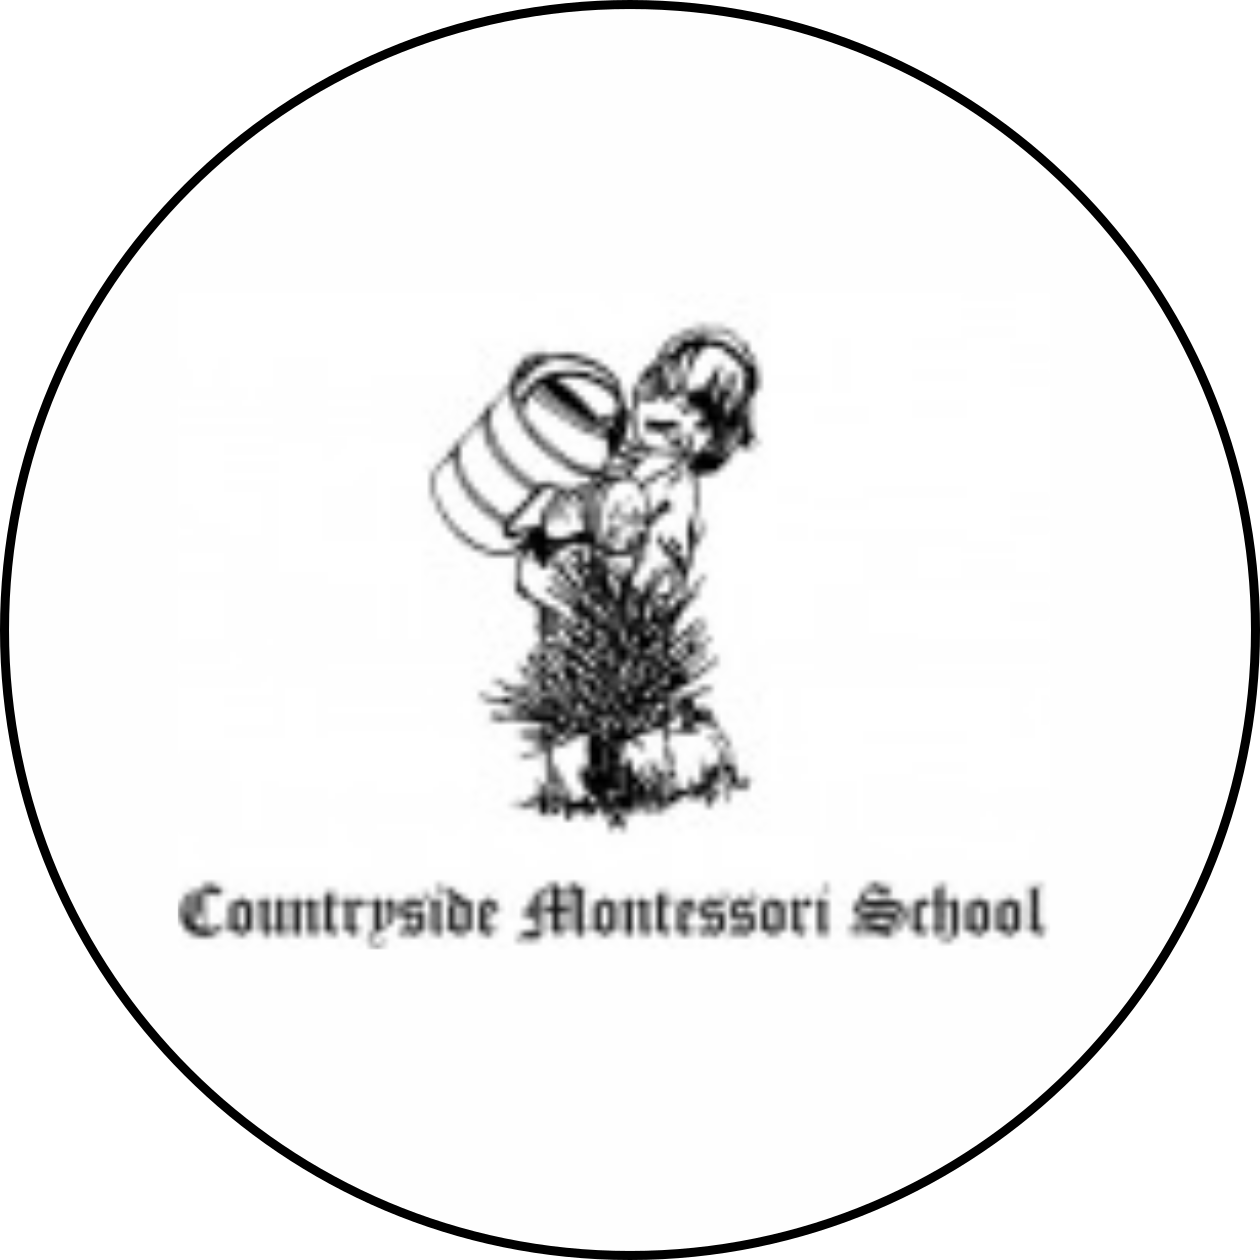 Countryside Montessori School - South Bend, IndianaFull Member